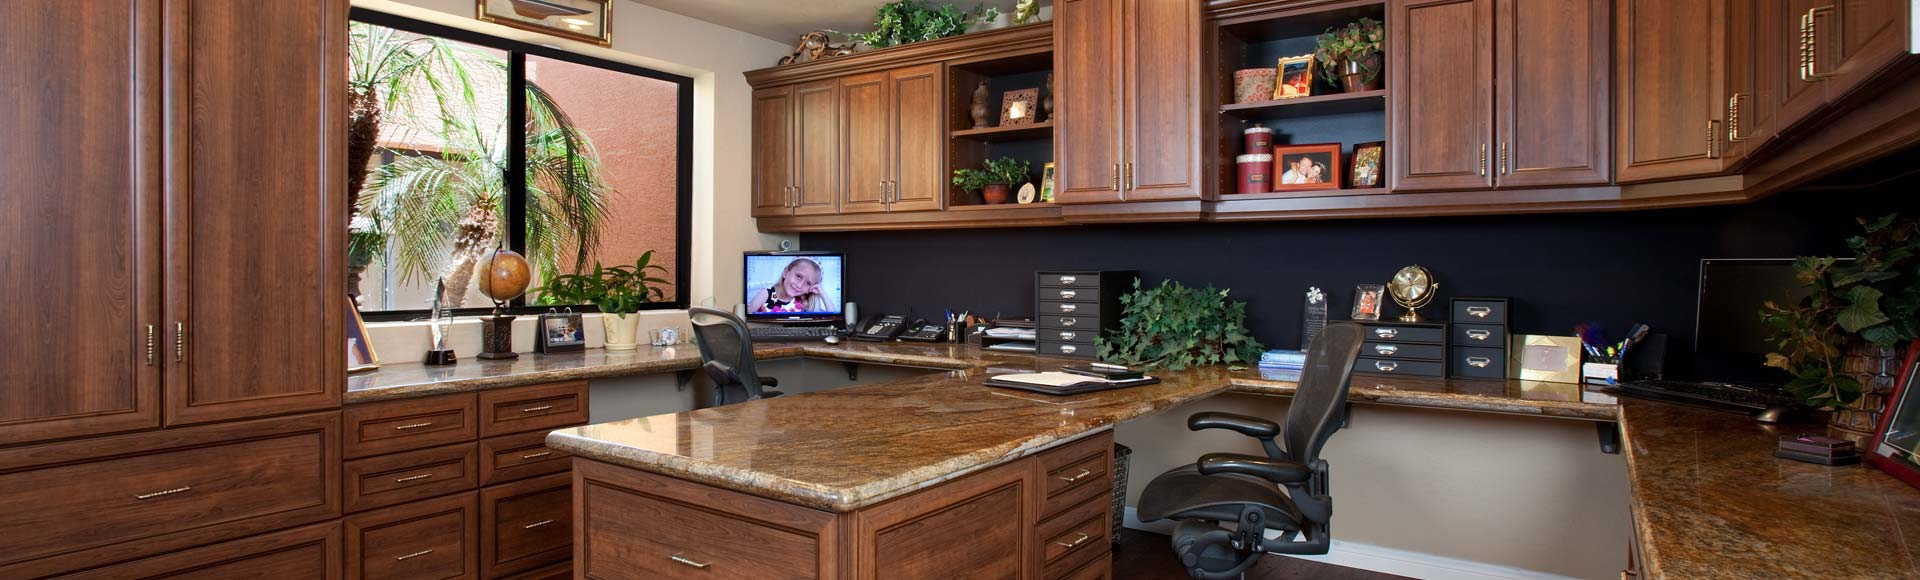 Bon Home Office Cabinets Office Organization Design In Michigan   Premier  Designs Home Office .